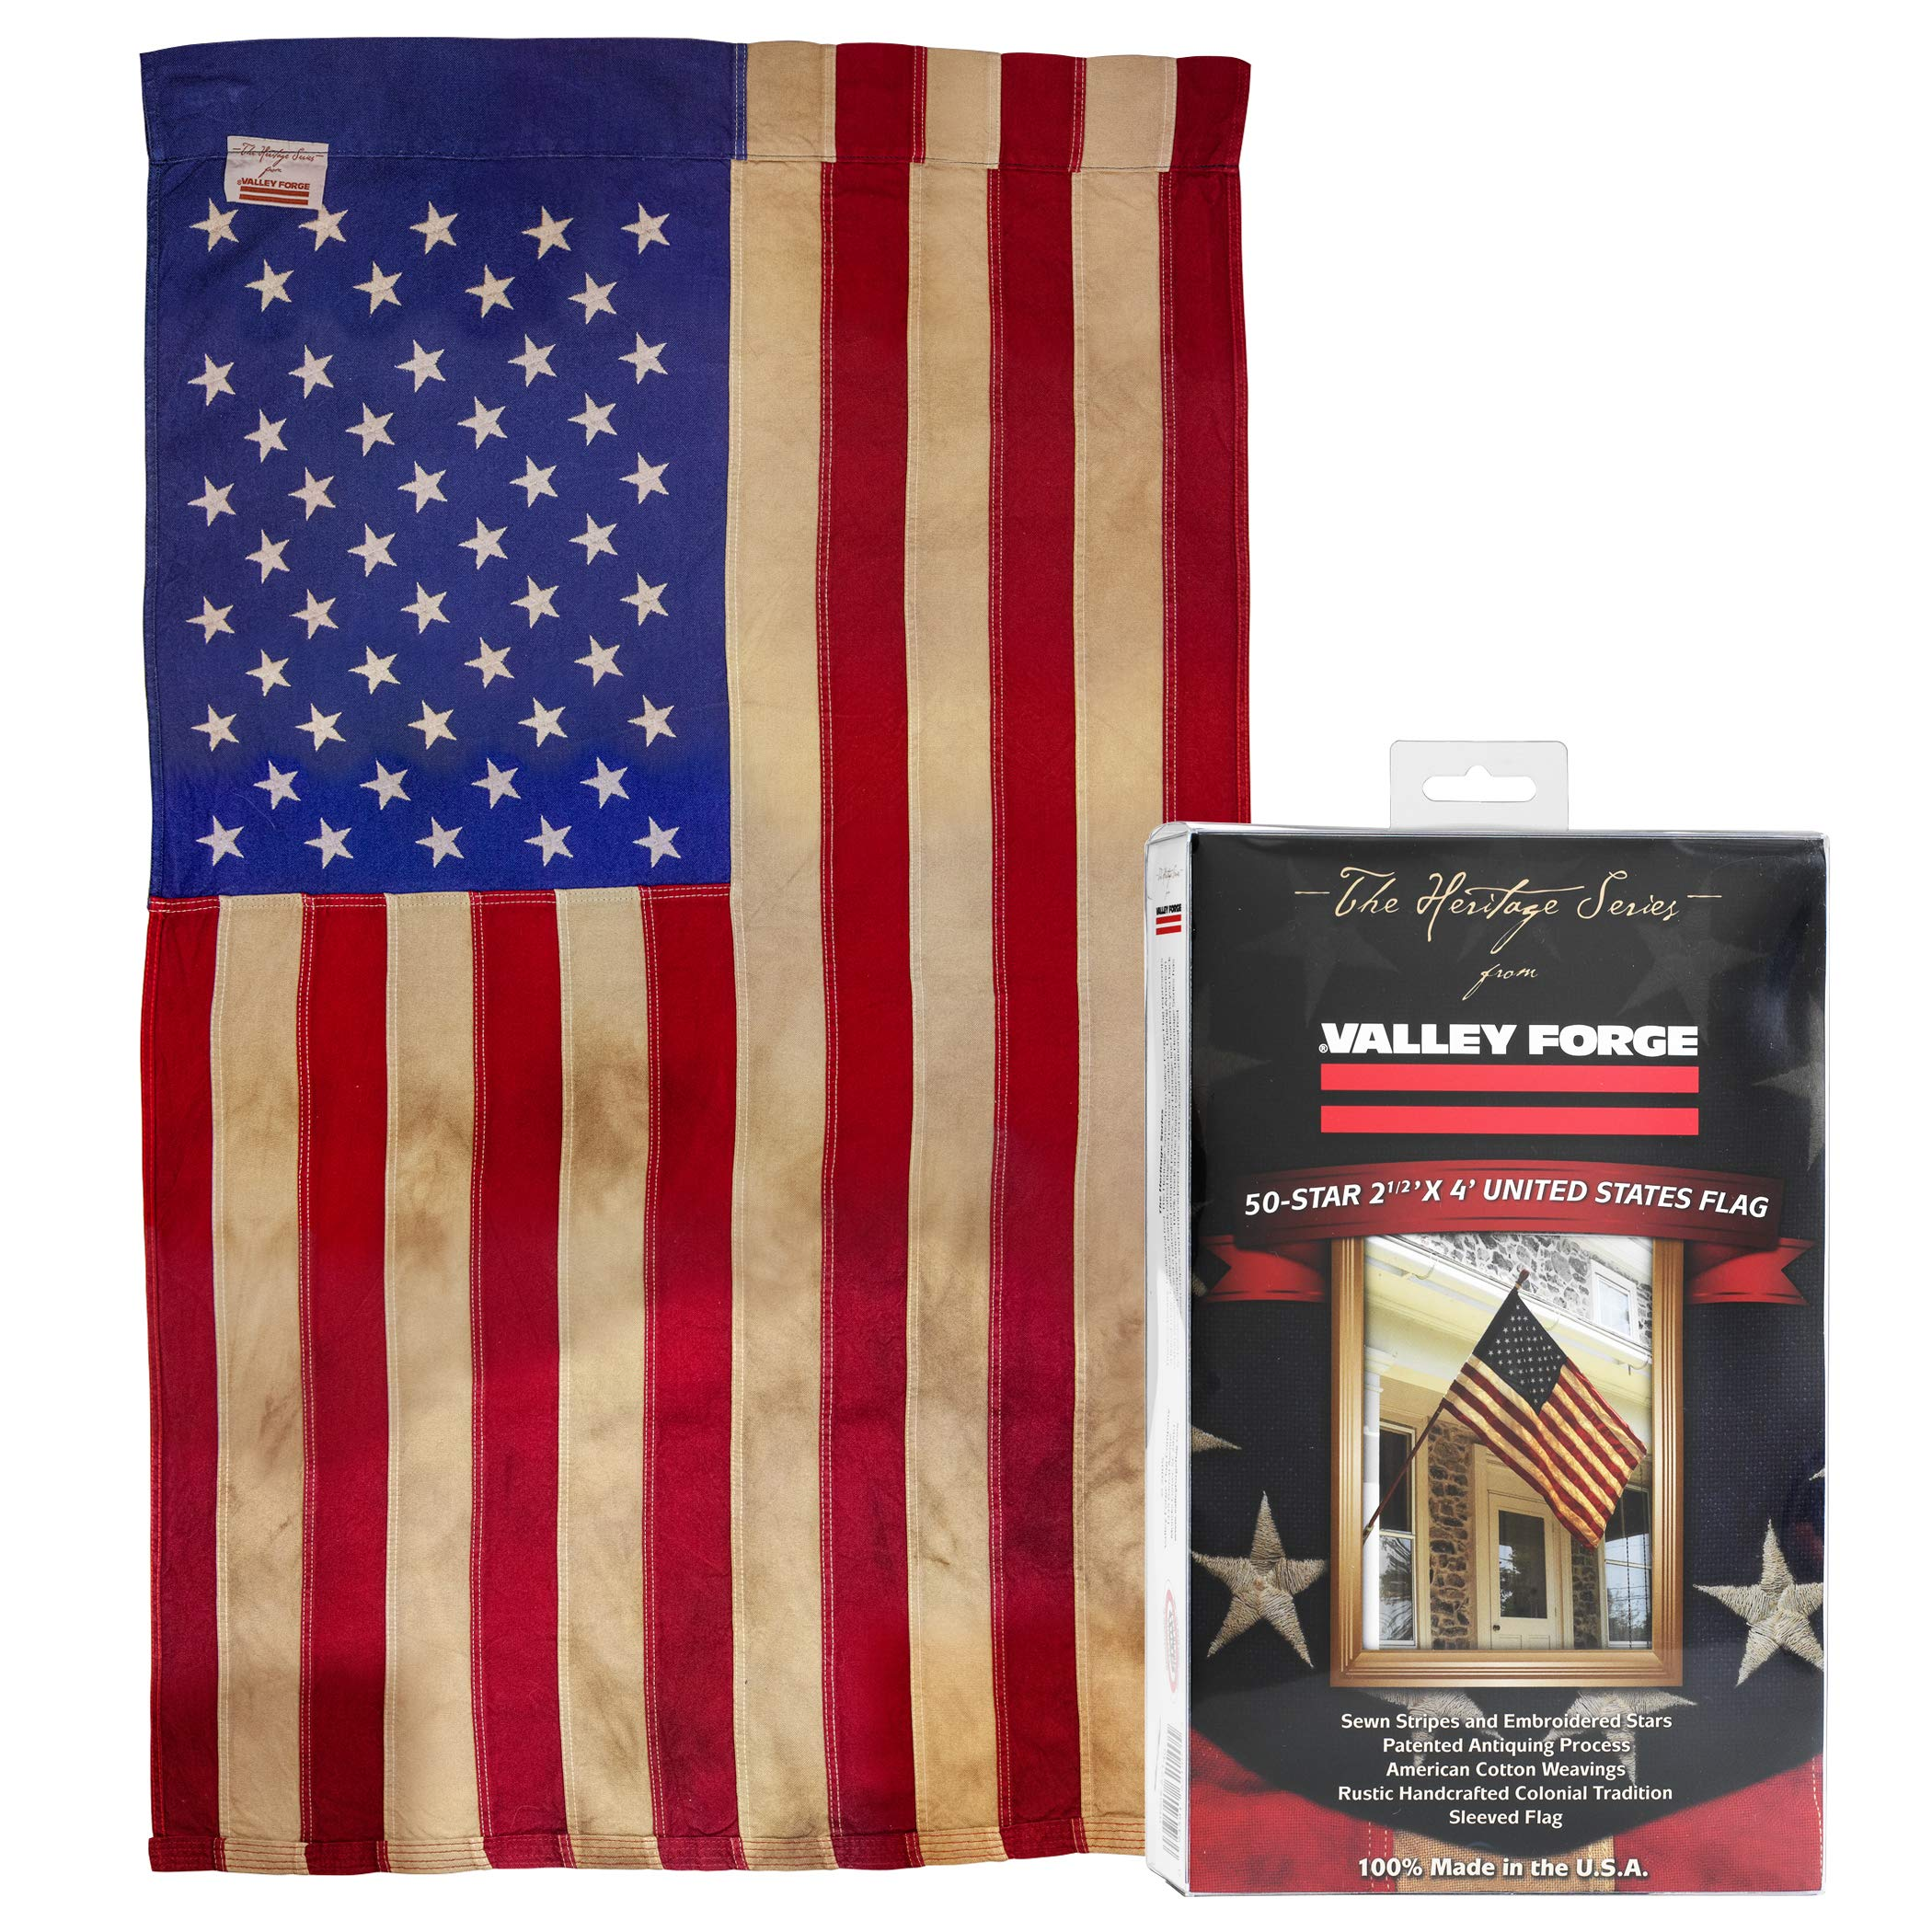 Valley Forge, American Flag, Poly Cotton, 2.5' x 4', 100% Made in USA, Heritage Series, Antiqued Colonial 50-Star US American Flag by Valley Forge